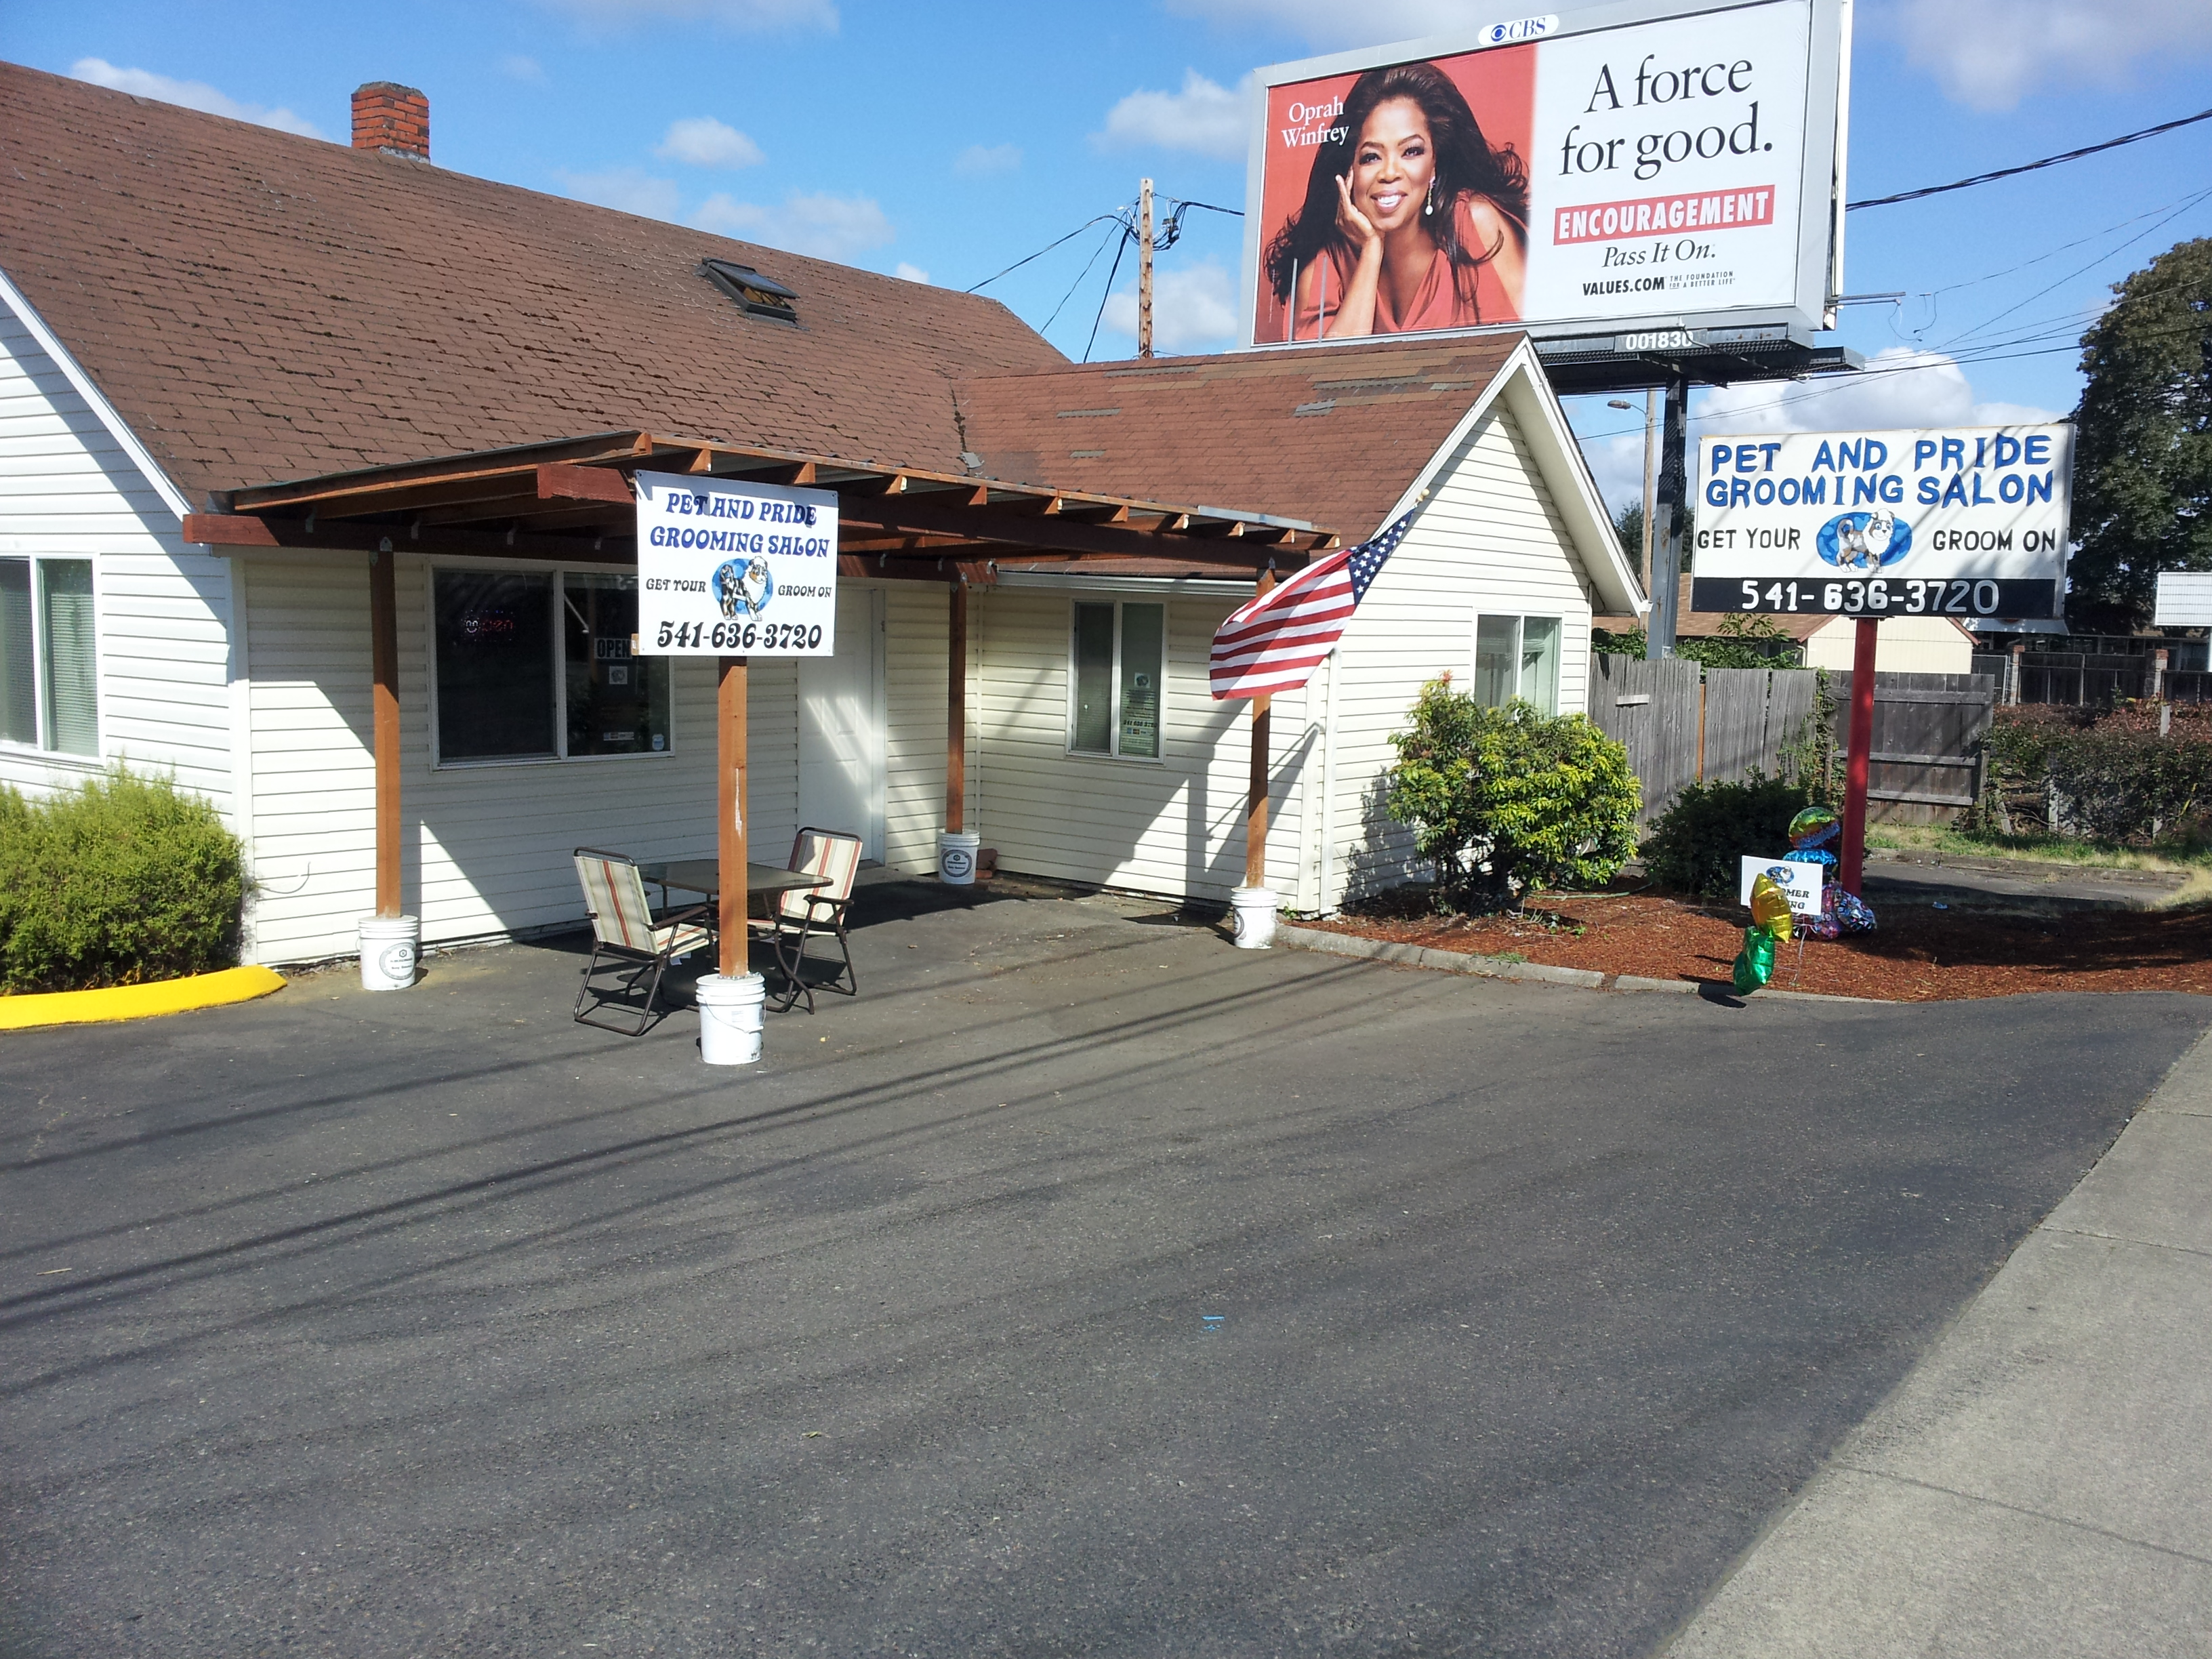 Pet and pride grooming salon 690 lorane hwy eugene or 97405 yp solutioingenieria Image collections